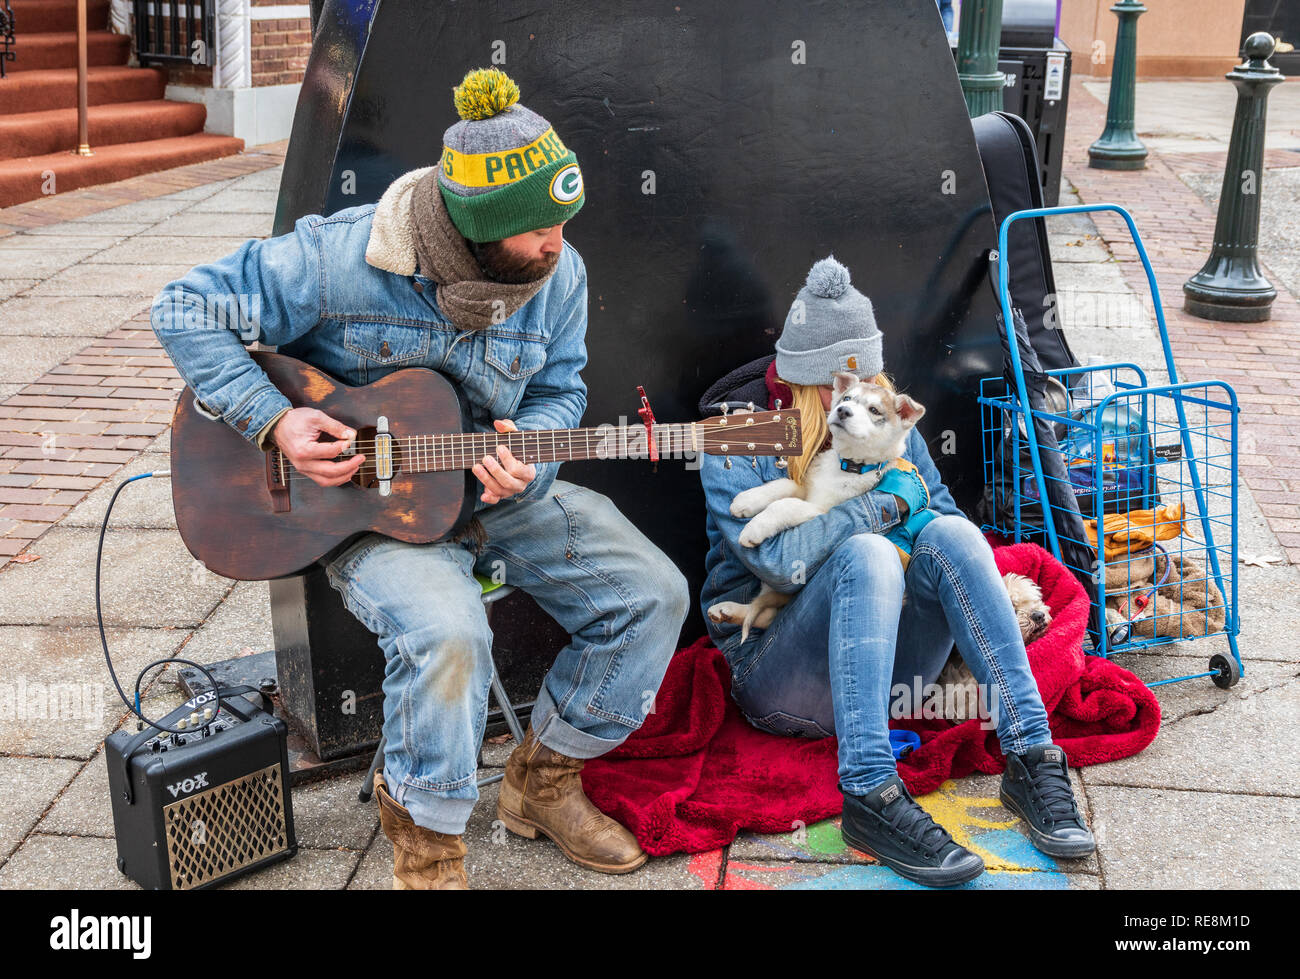 ASHEVILLE, NC, USA-1/18/19: A guitar playing busker, accompanied by a girl and two dogs. - Stock Image